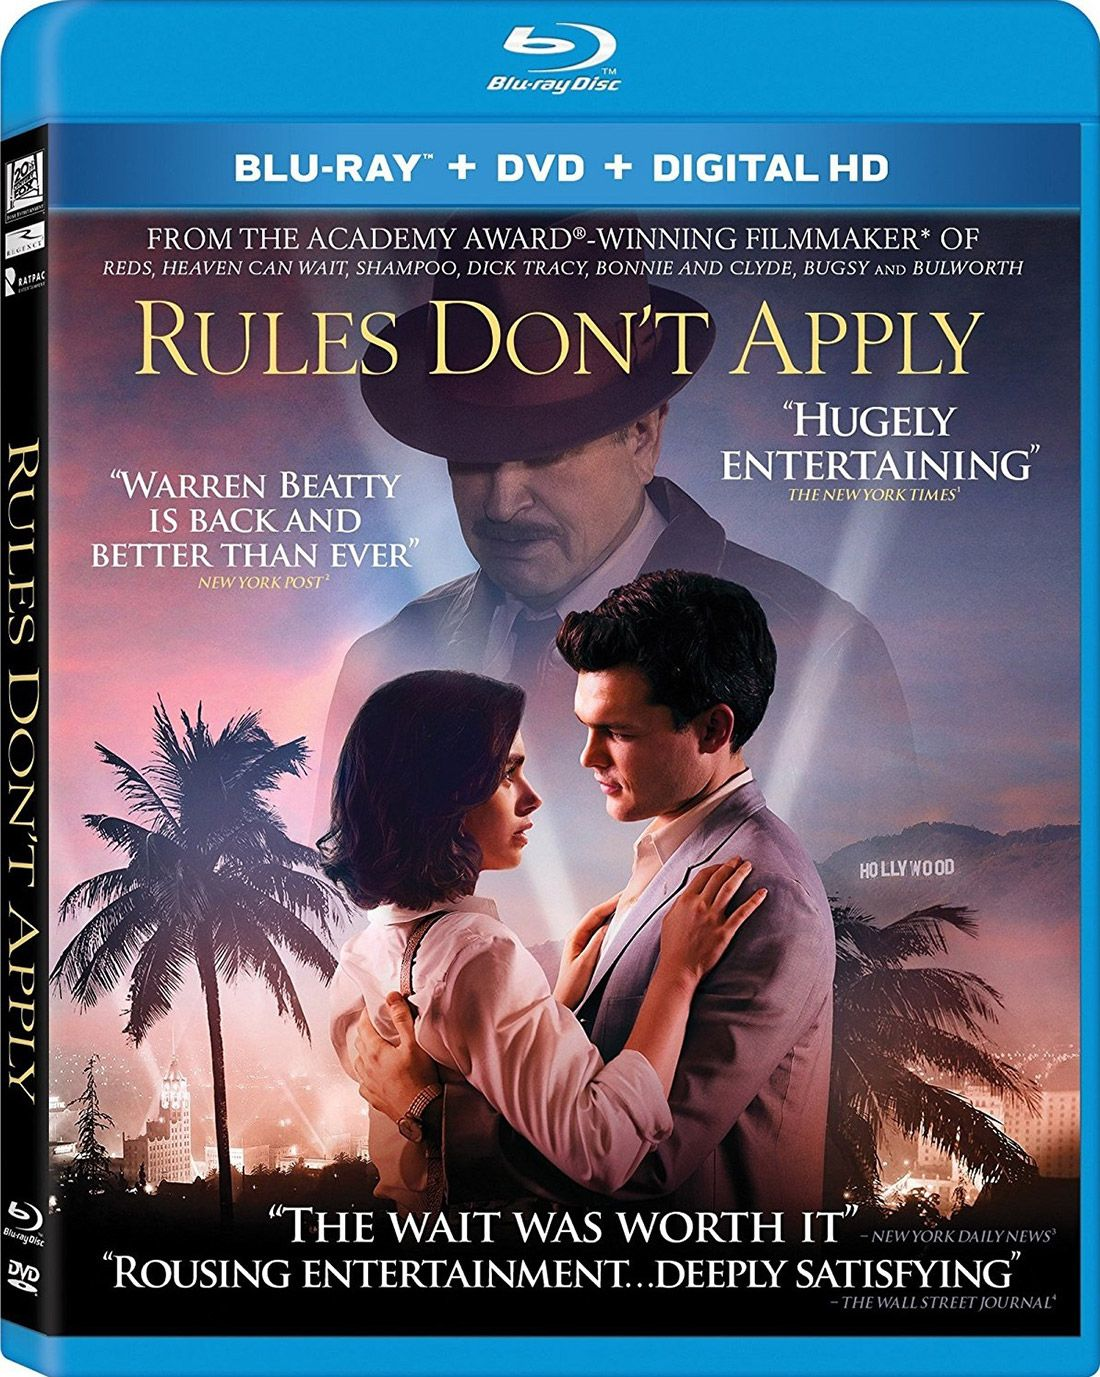 Rules Don't Apply Bluray Review Streaming movies, Full